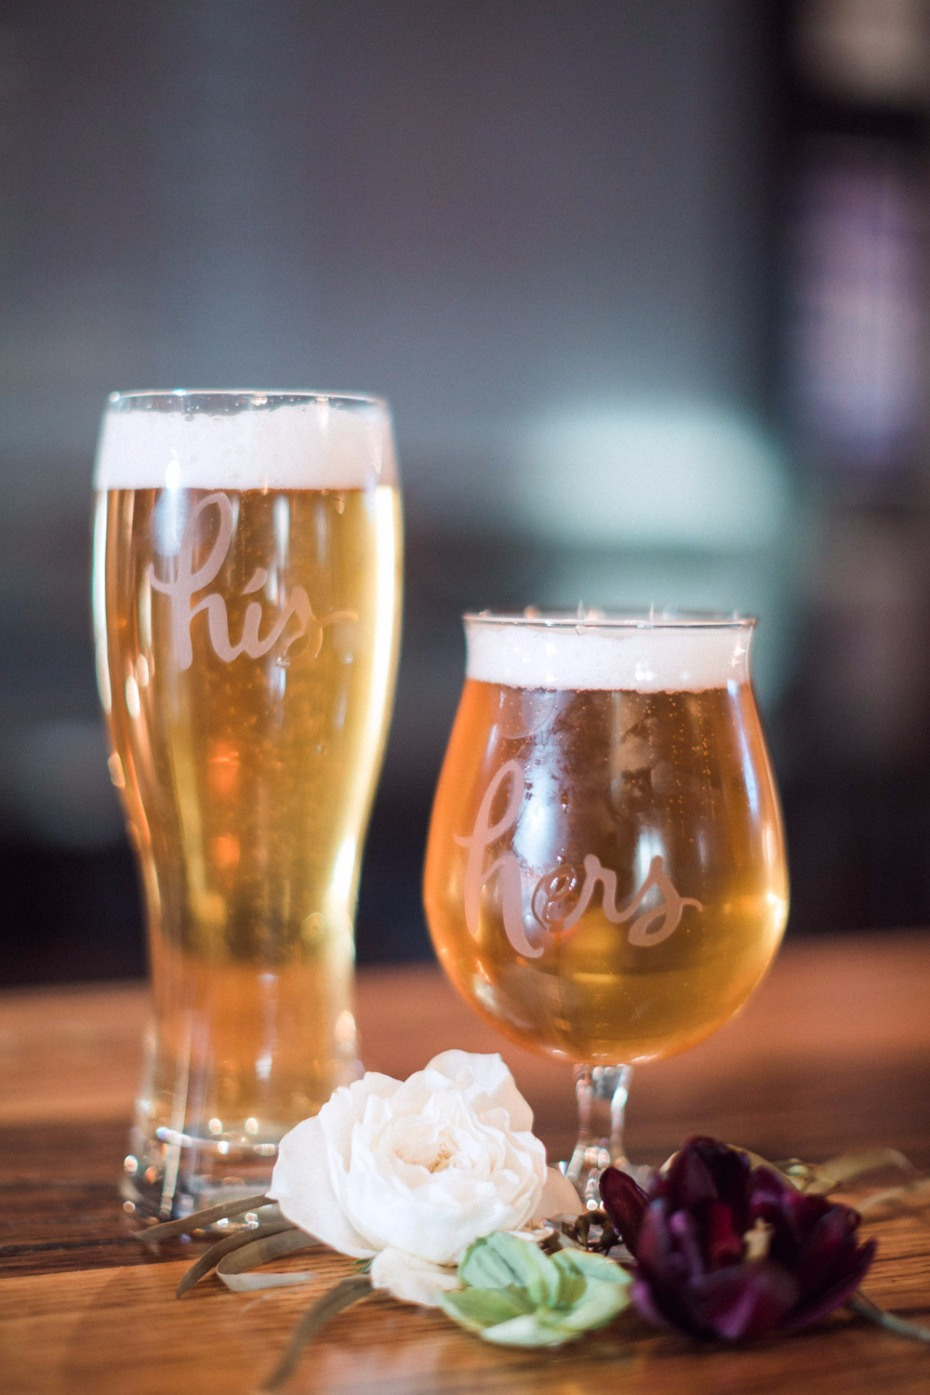 His and hers beer glasses